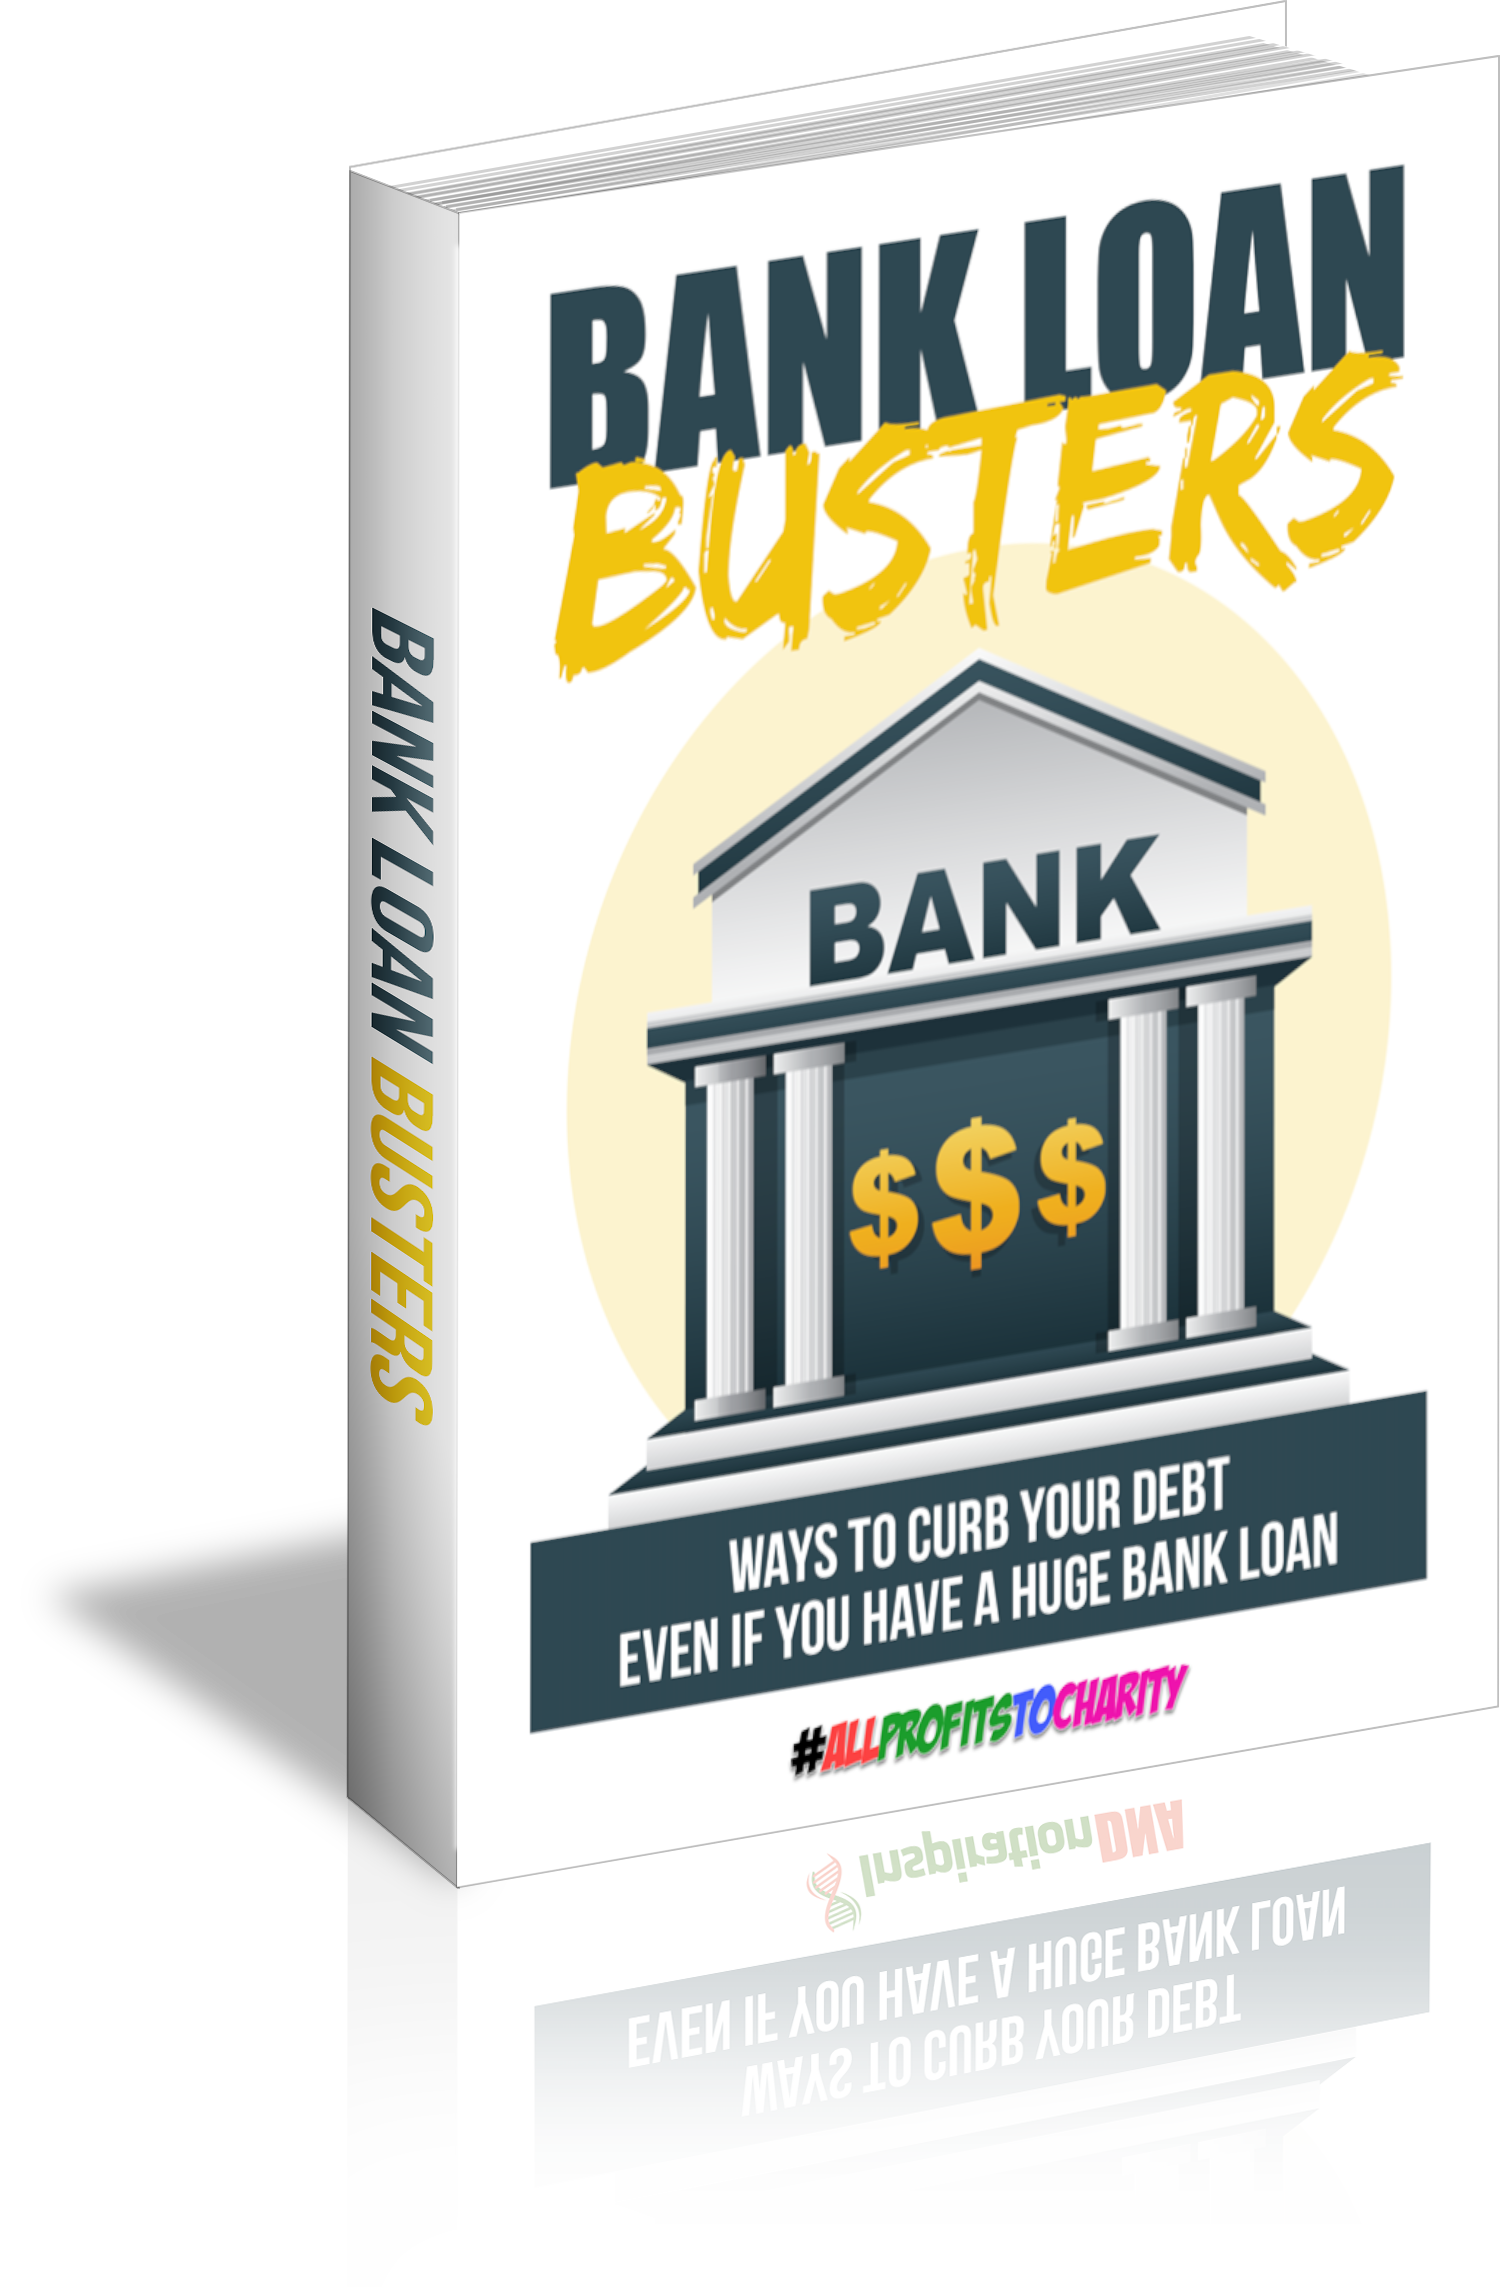 Bank Loan Busters cover